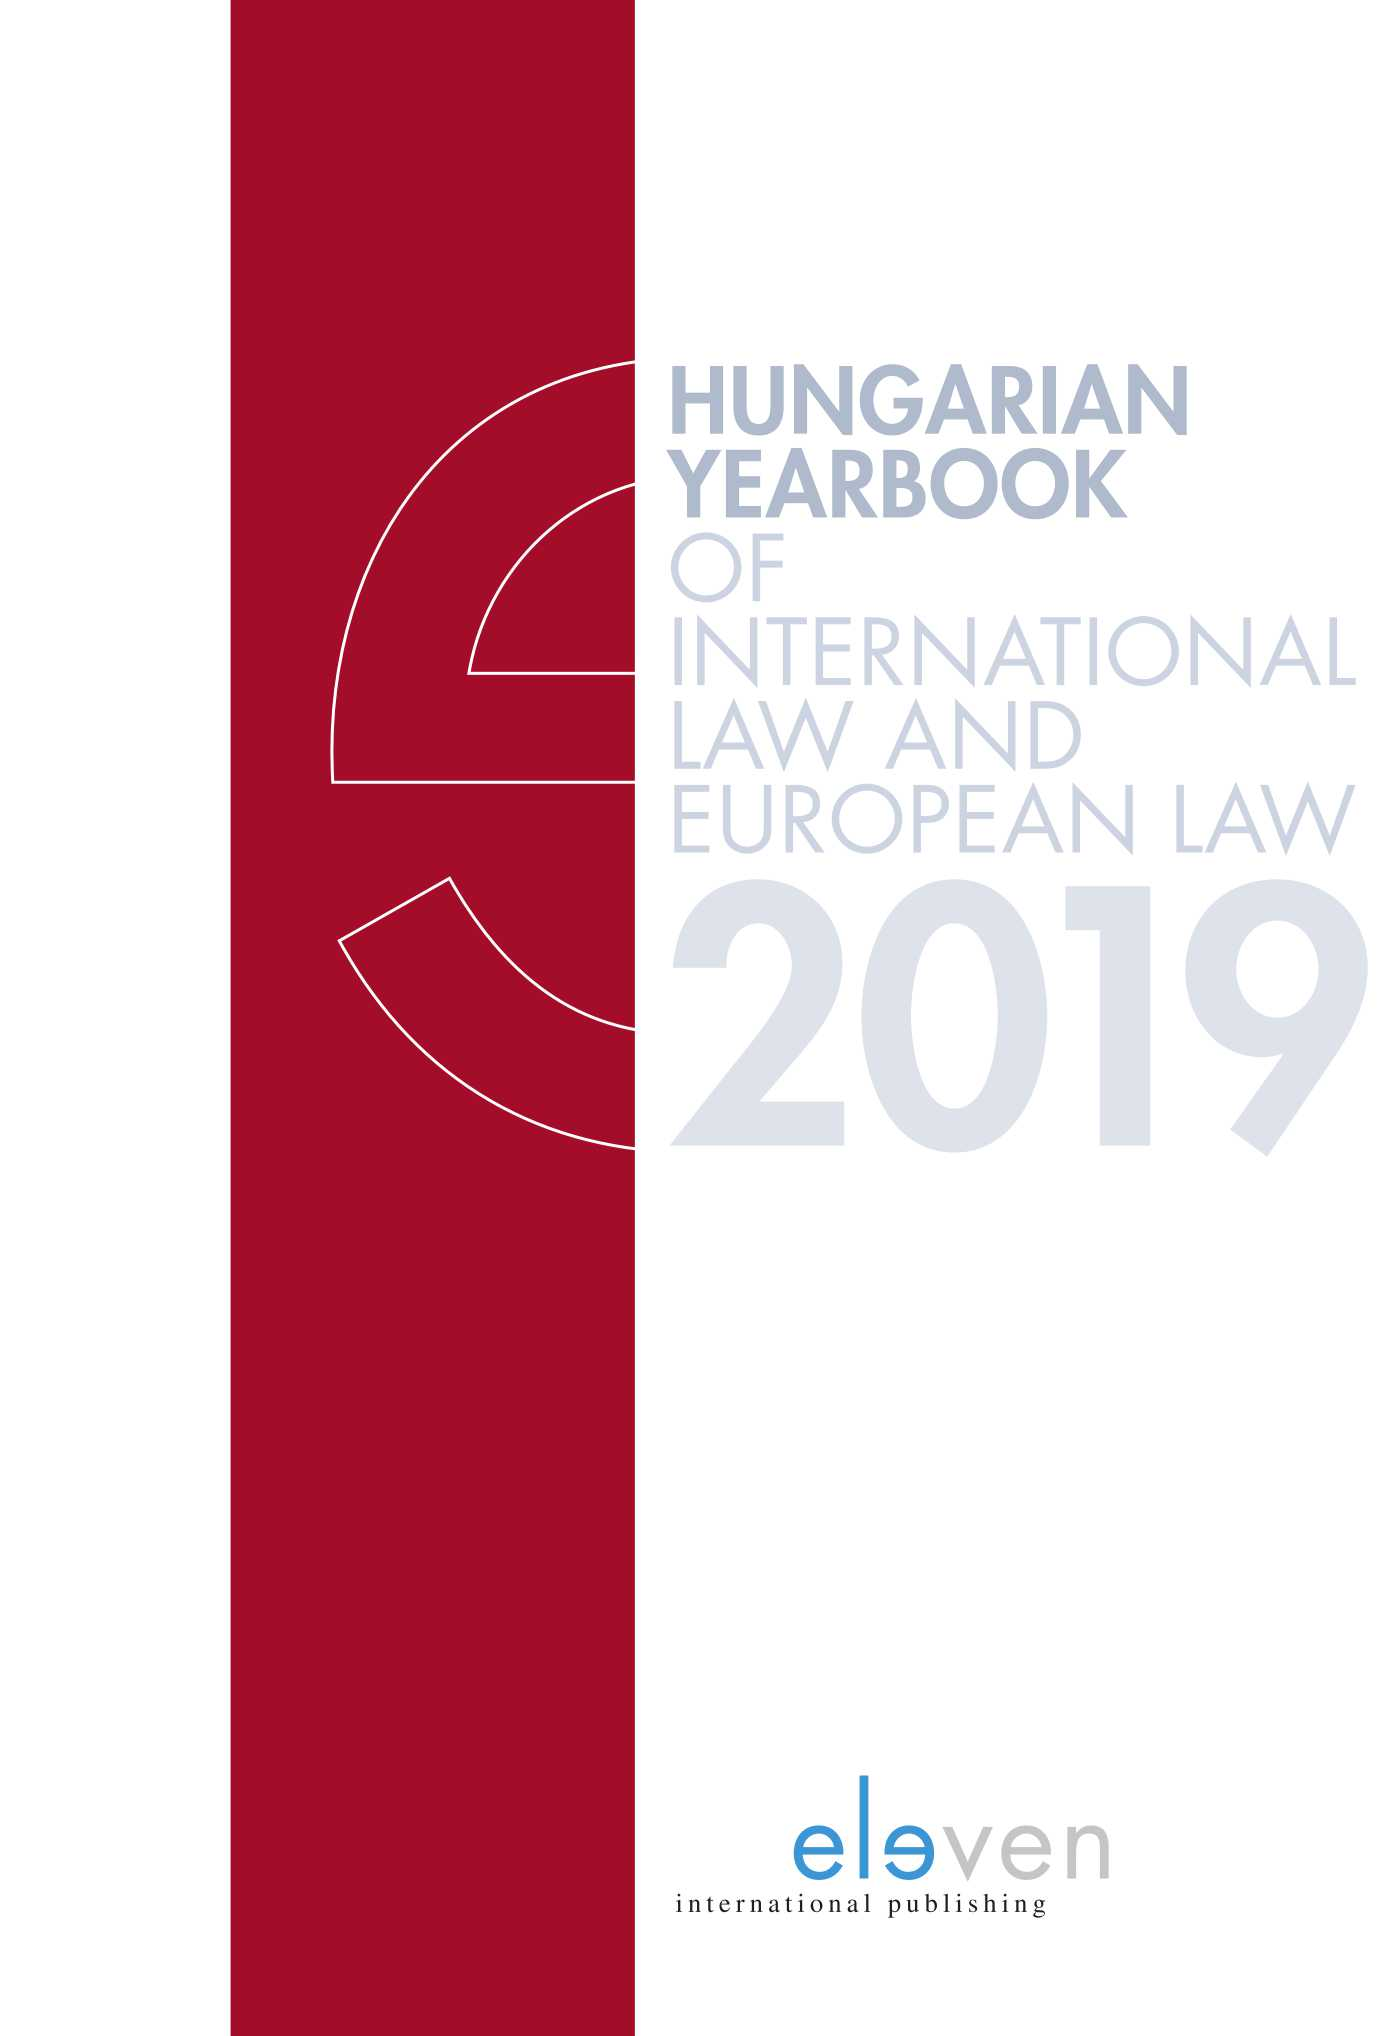 Hungarian Yearbook of International Law and European Law 2019